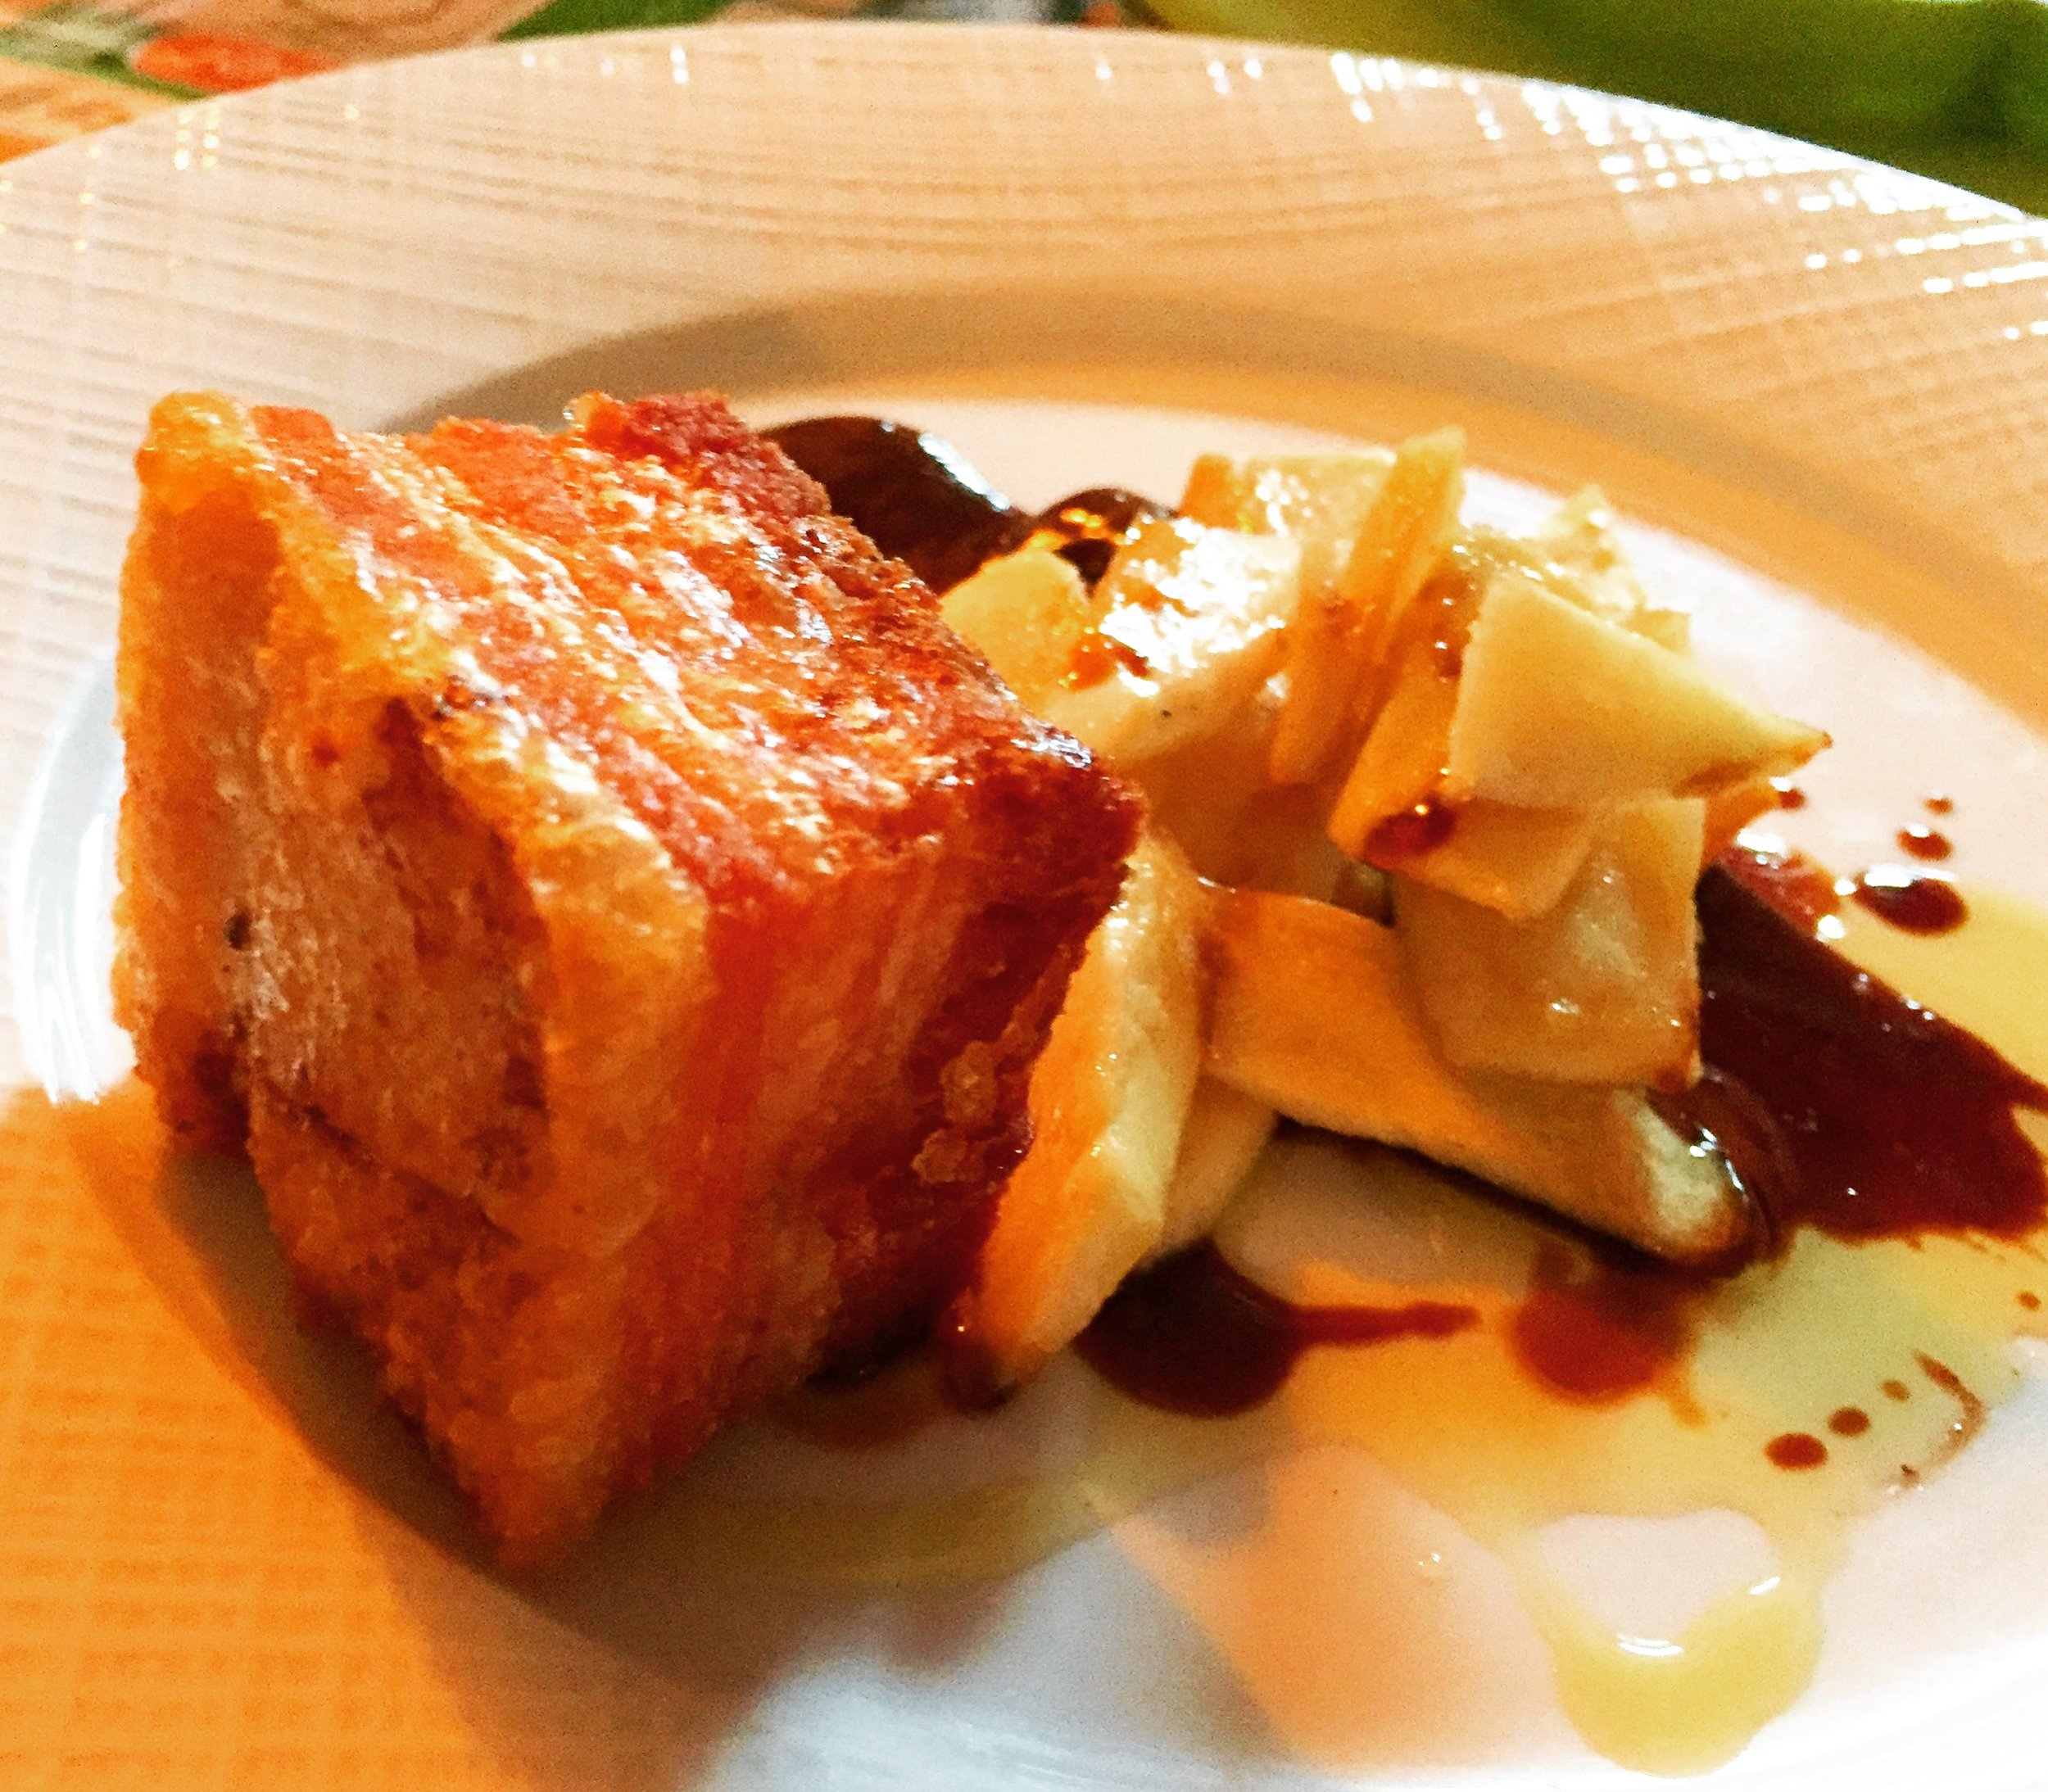 Pork belly with braised cabbage and apple salad